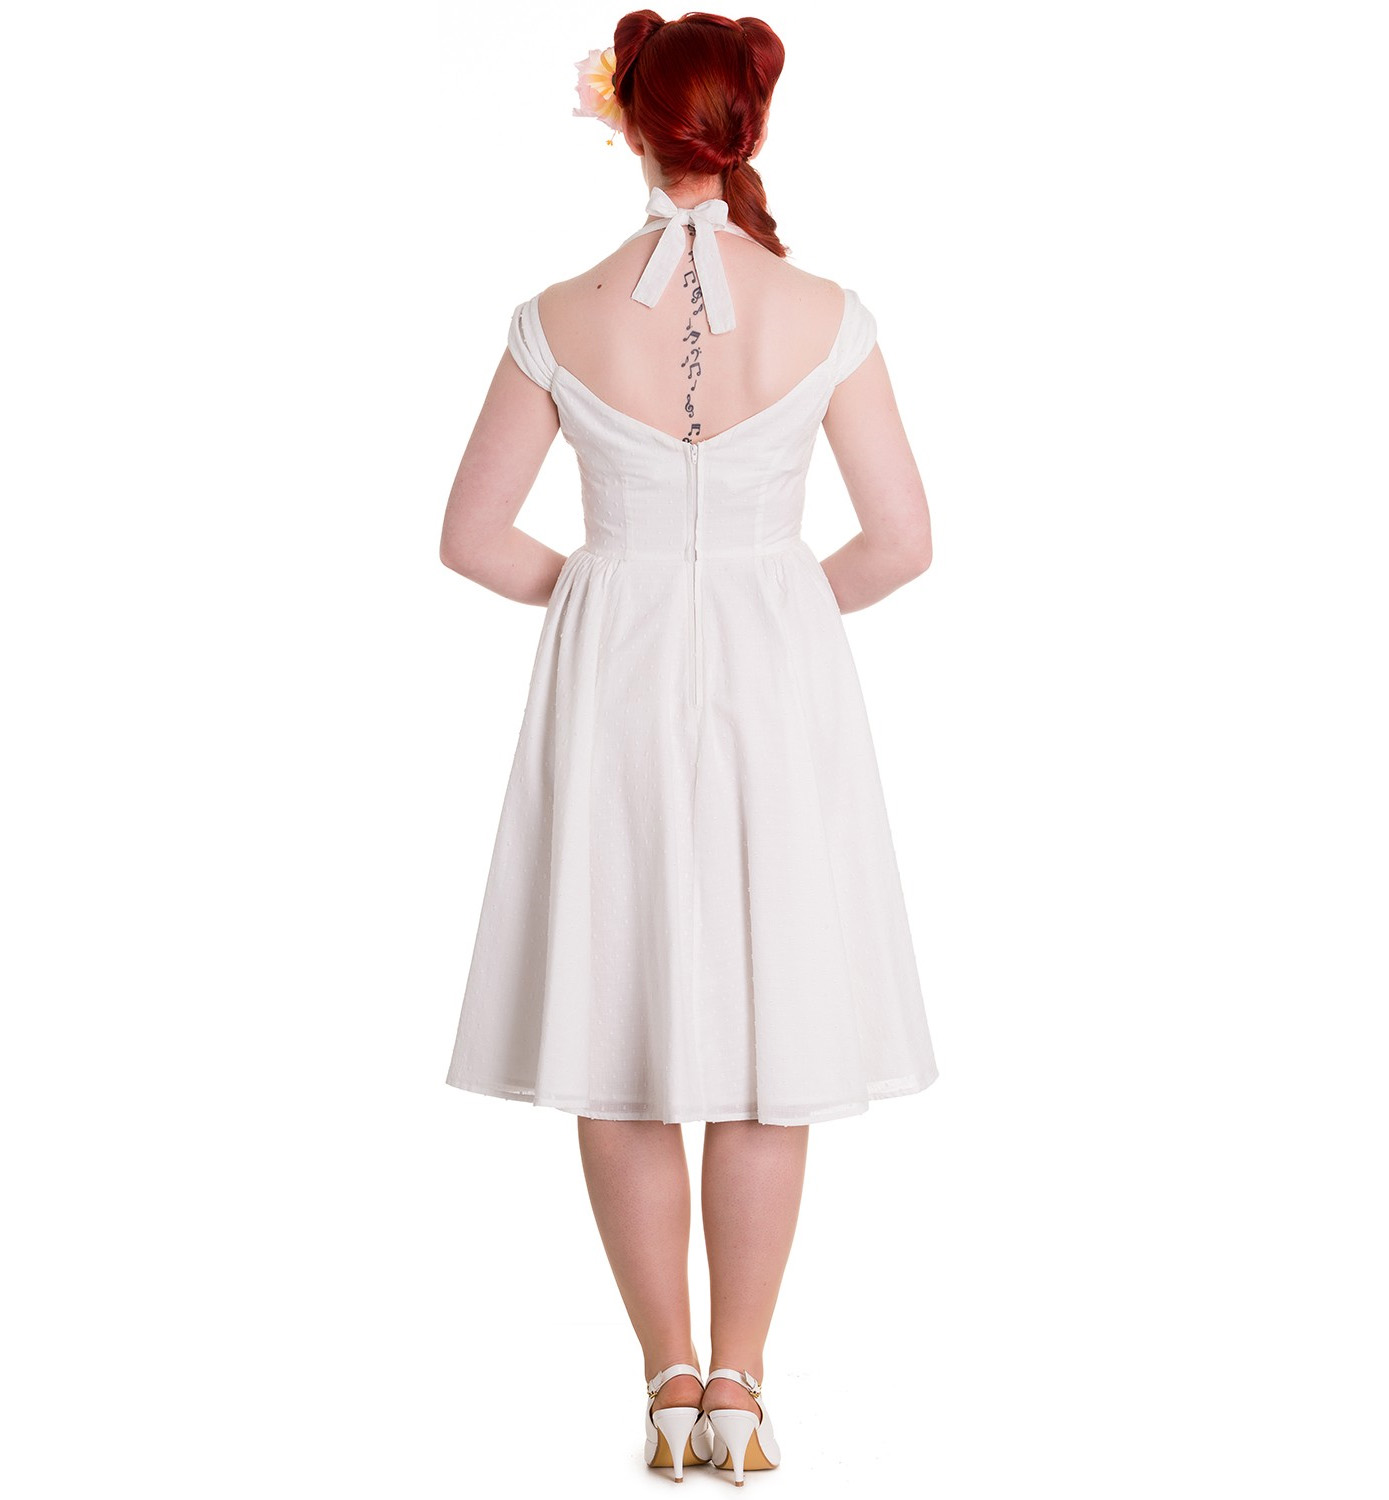 Hell-Bunny-Pin-Up-Party-50s-Dress-Vintage-Rockabilly-EVELINE-White-All-Sizes thumbnail 5